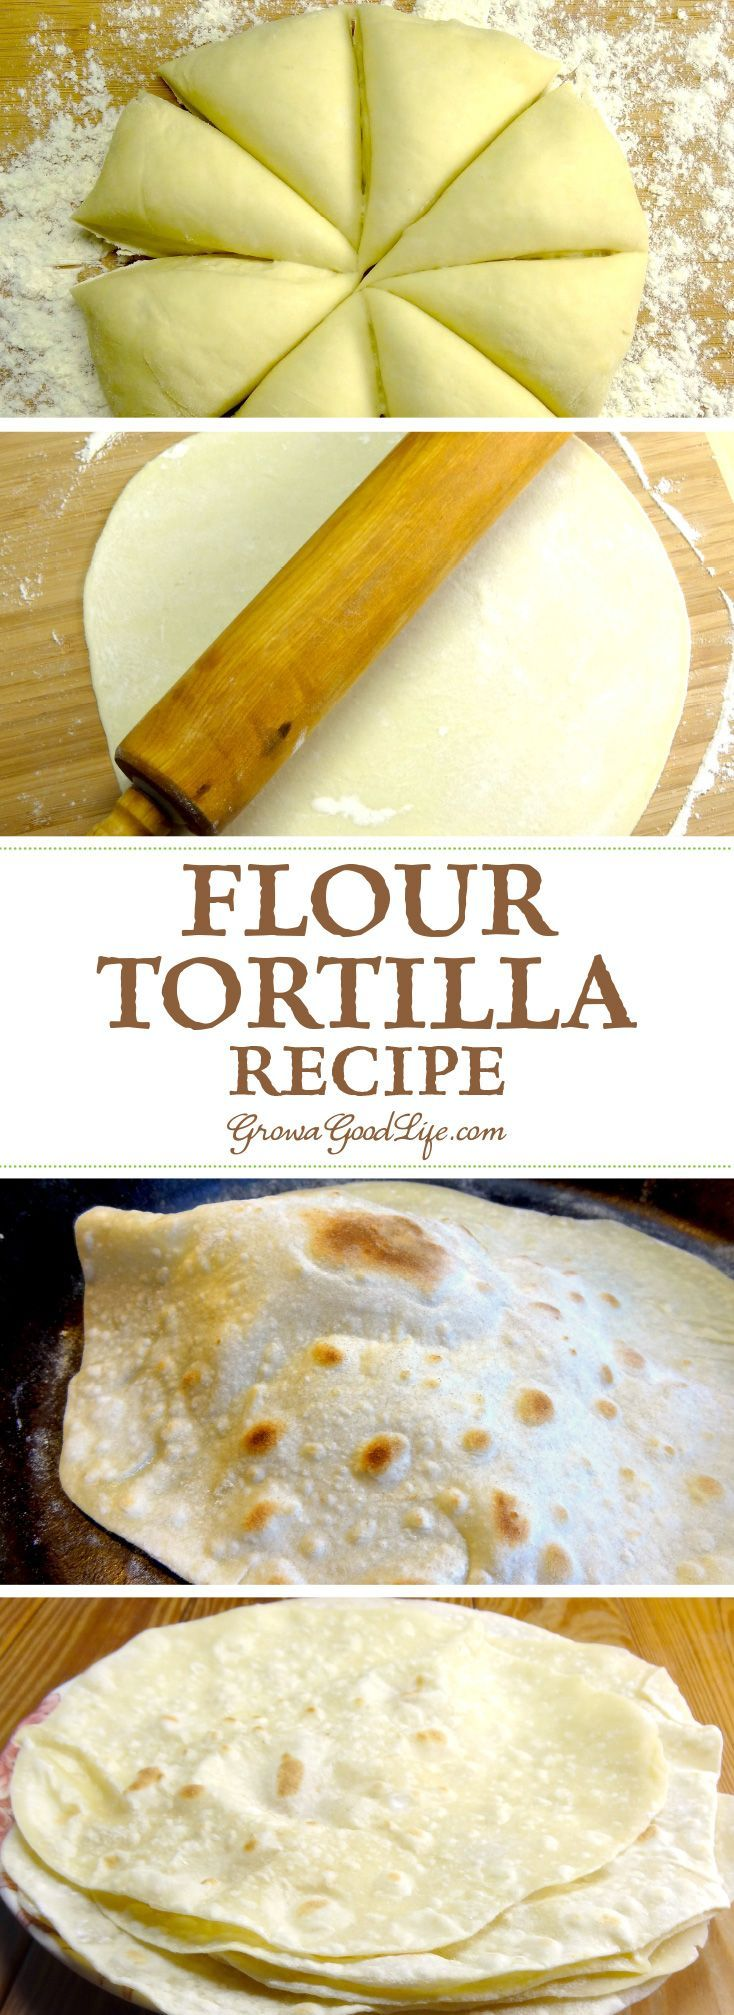 Only four basic ingredients are needed for this flour tortilla recipe. Making homemade tortillas is worth the extra effort because they taste so much better than store bought tortillas. Try this simple homemade flour tortilla recipe and you will know exac